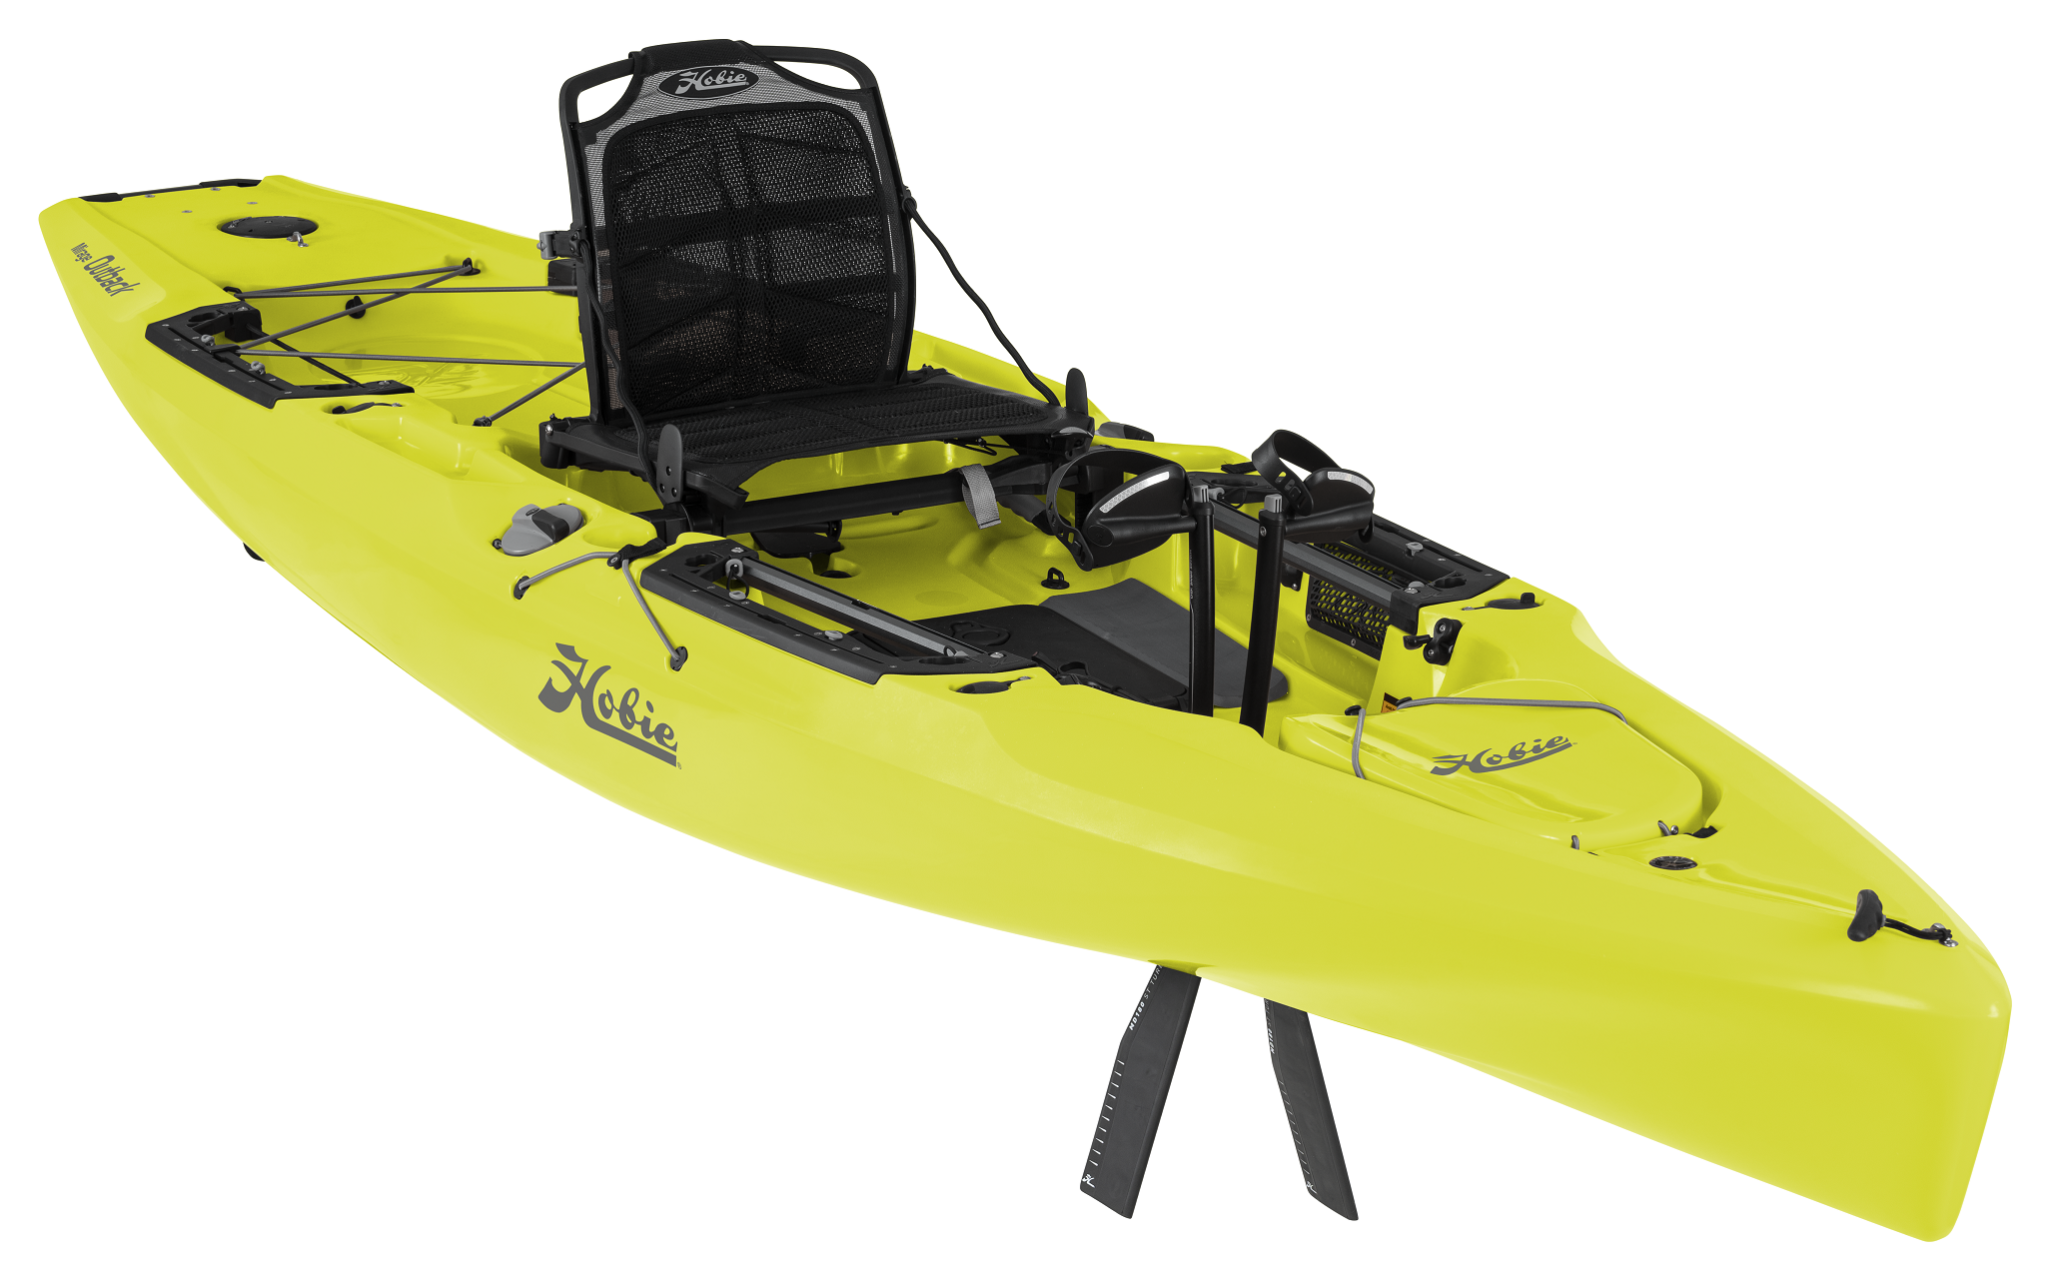 Key Sailing | Watersports Rentals, Sales, and Boat Tours ...